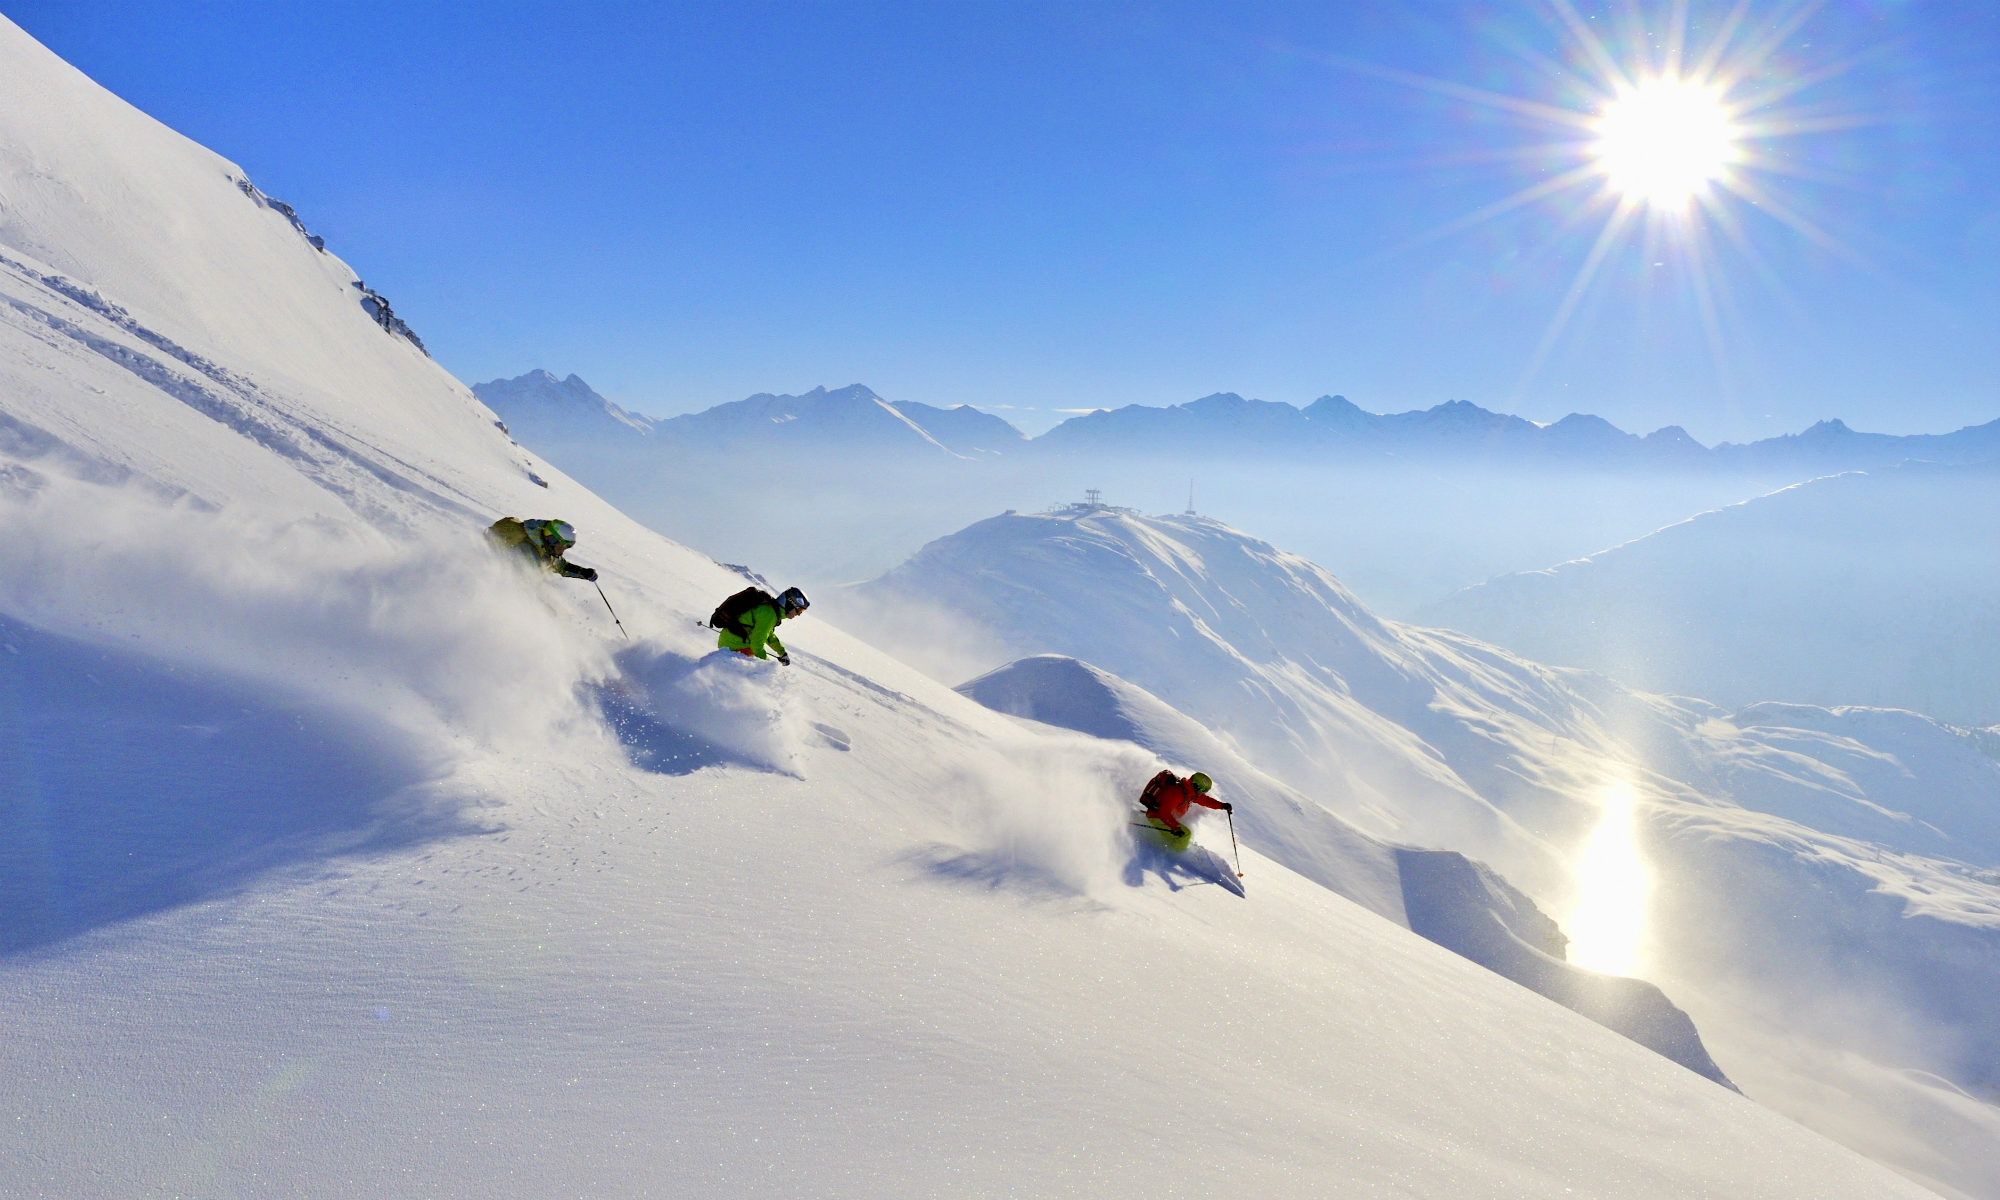 Three freestylers skiing on powder snow in St. Anton